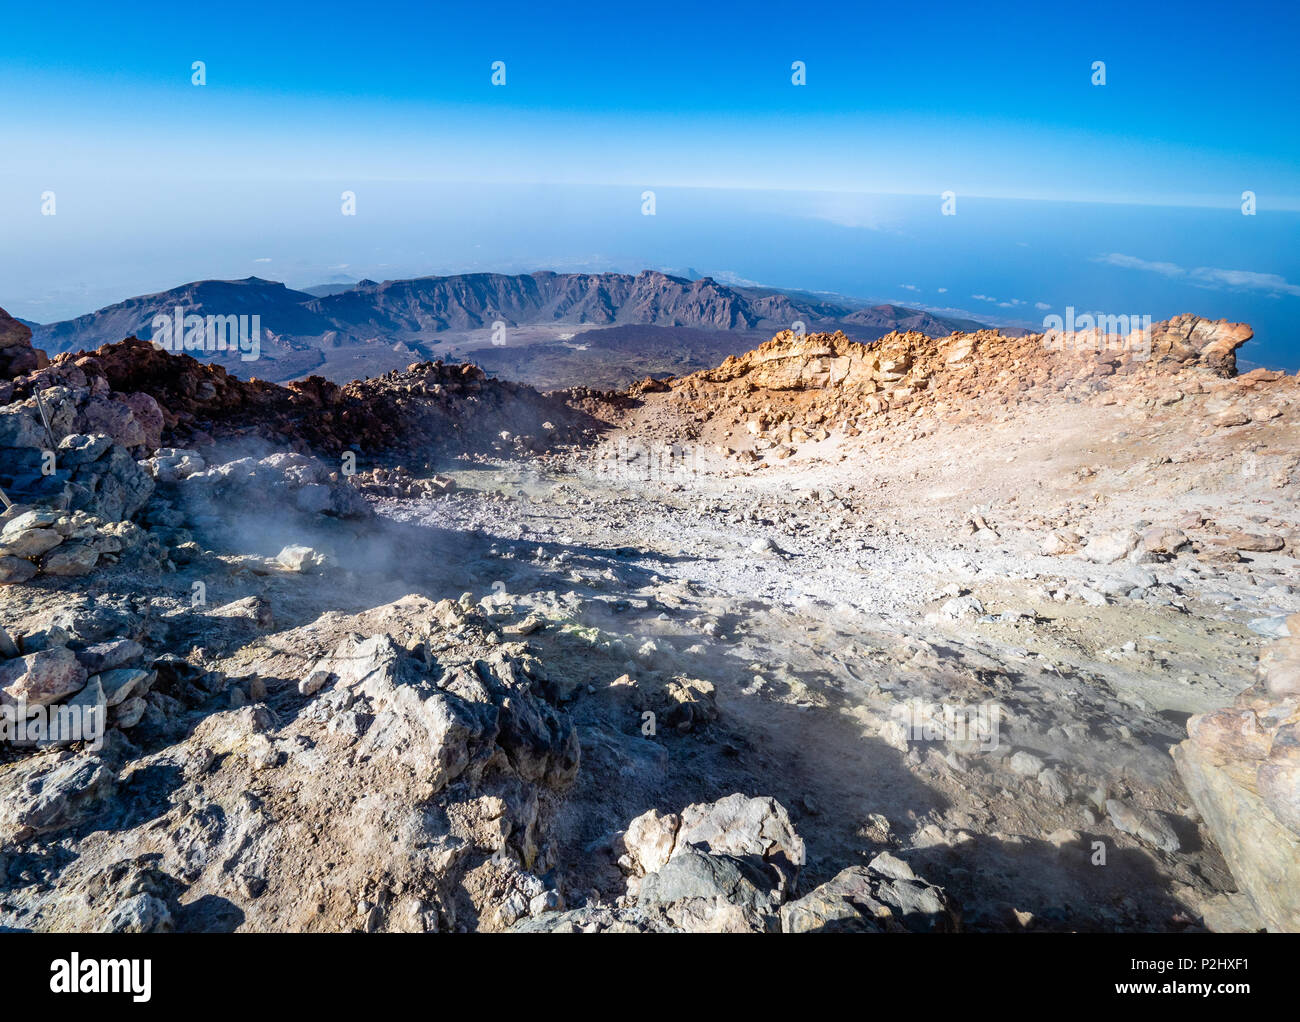 Smouldering summit crater of active volcano Mount Teide with lower caldera rim in the distance on Tenerife the largest of the Canary Islands - Stock Image